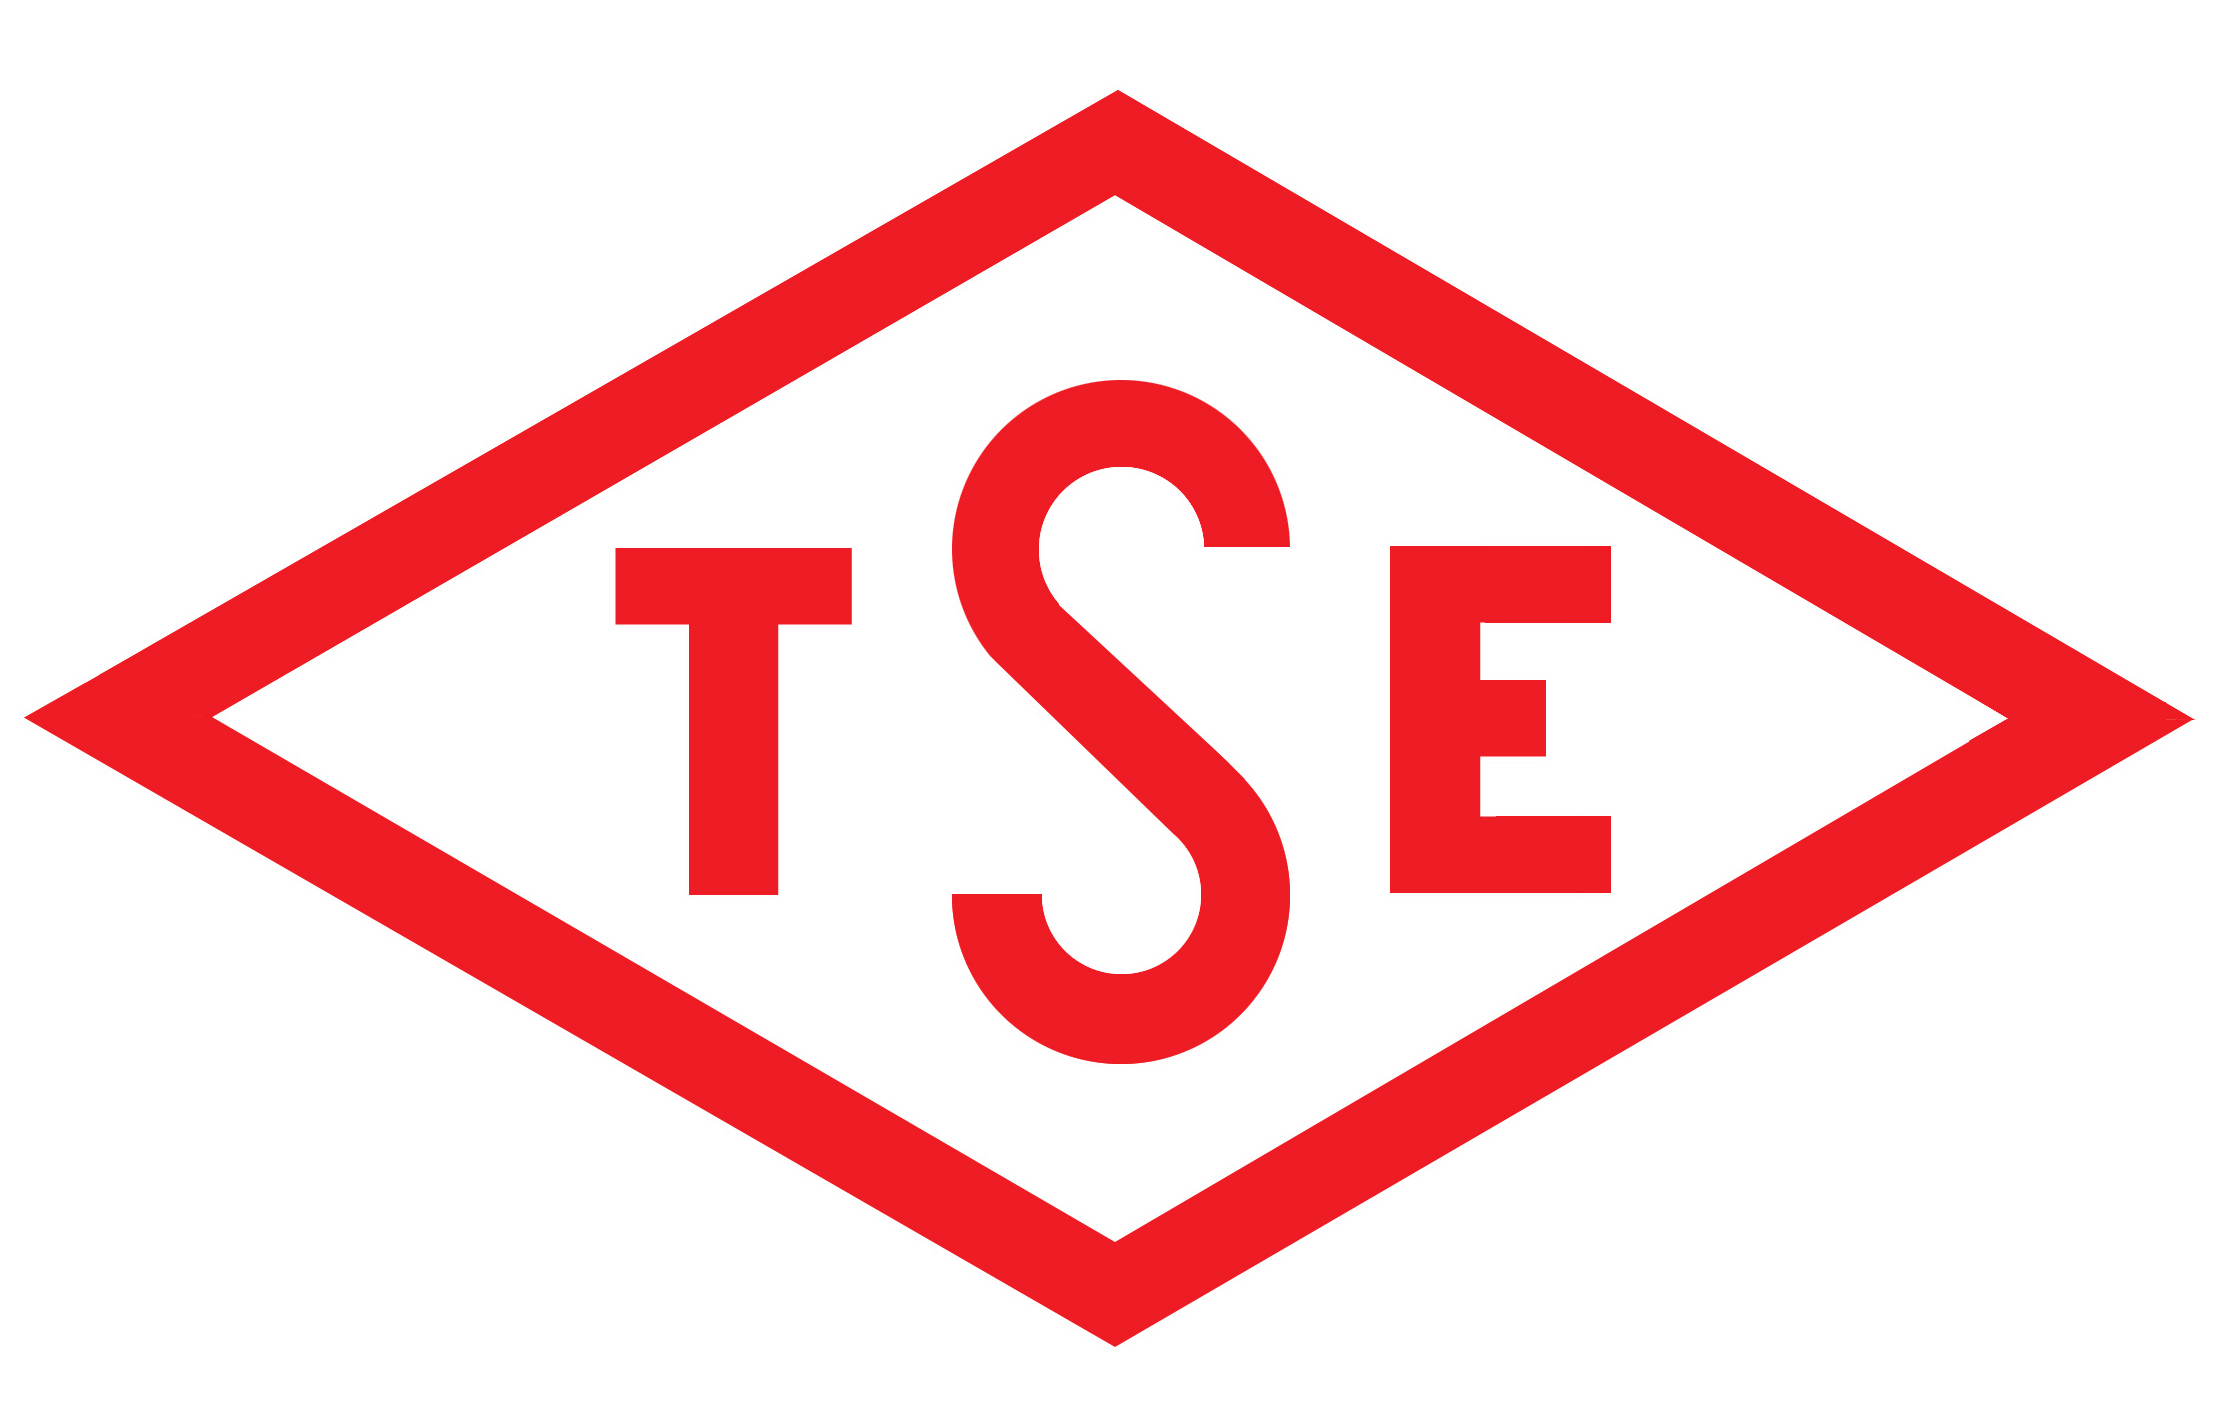 Turkish Standards Institution (TSE)